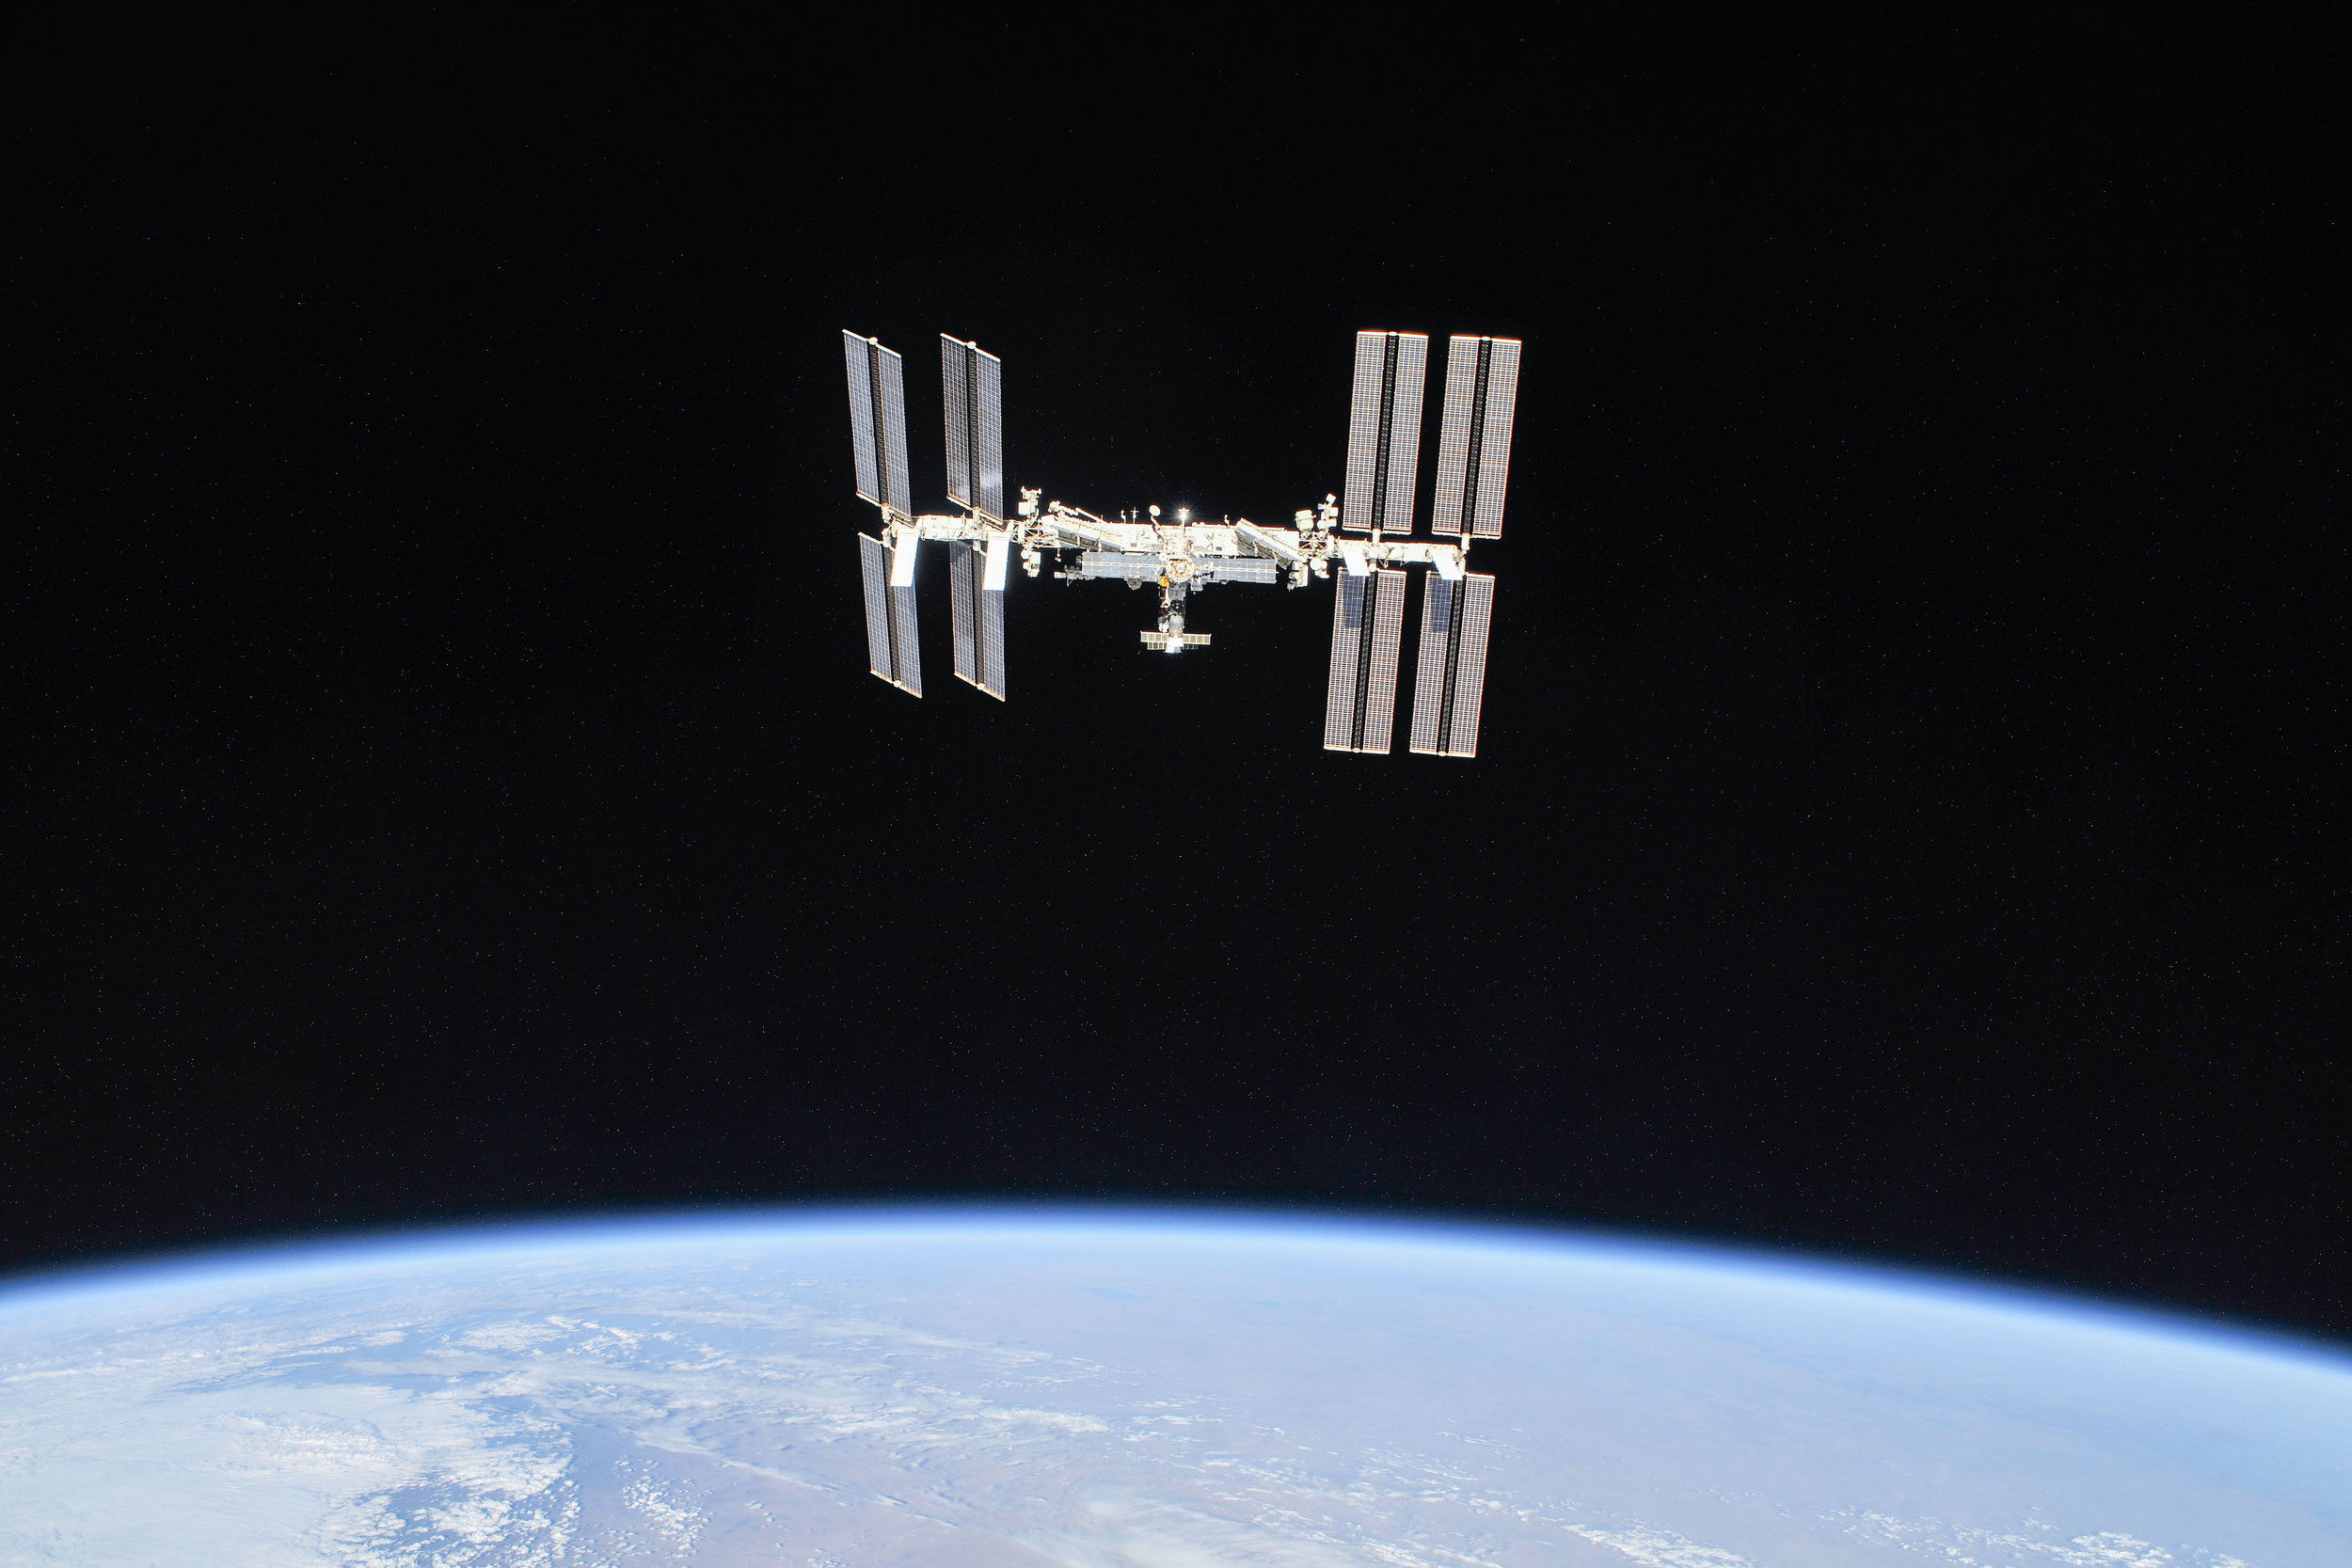 the-international-space-station-as-of-oct-4-2018_45585656432_o.jpg